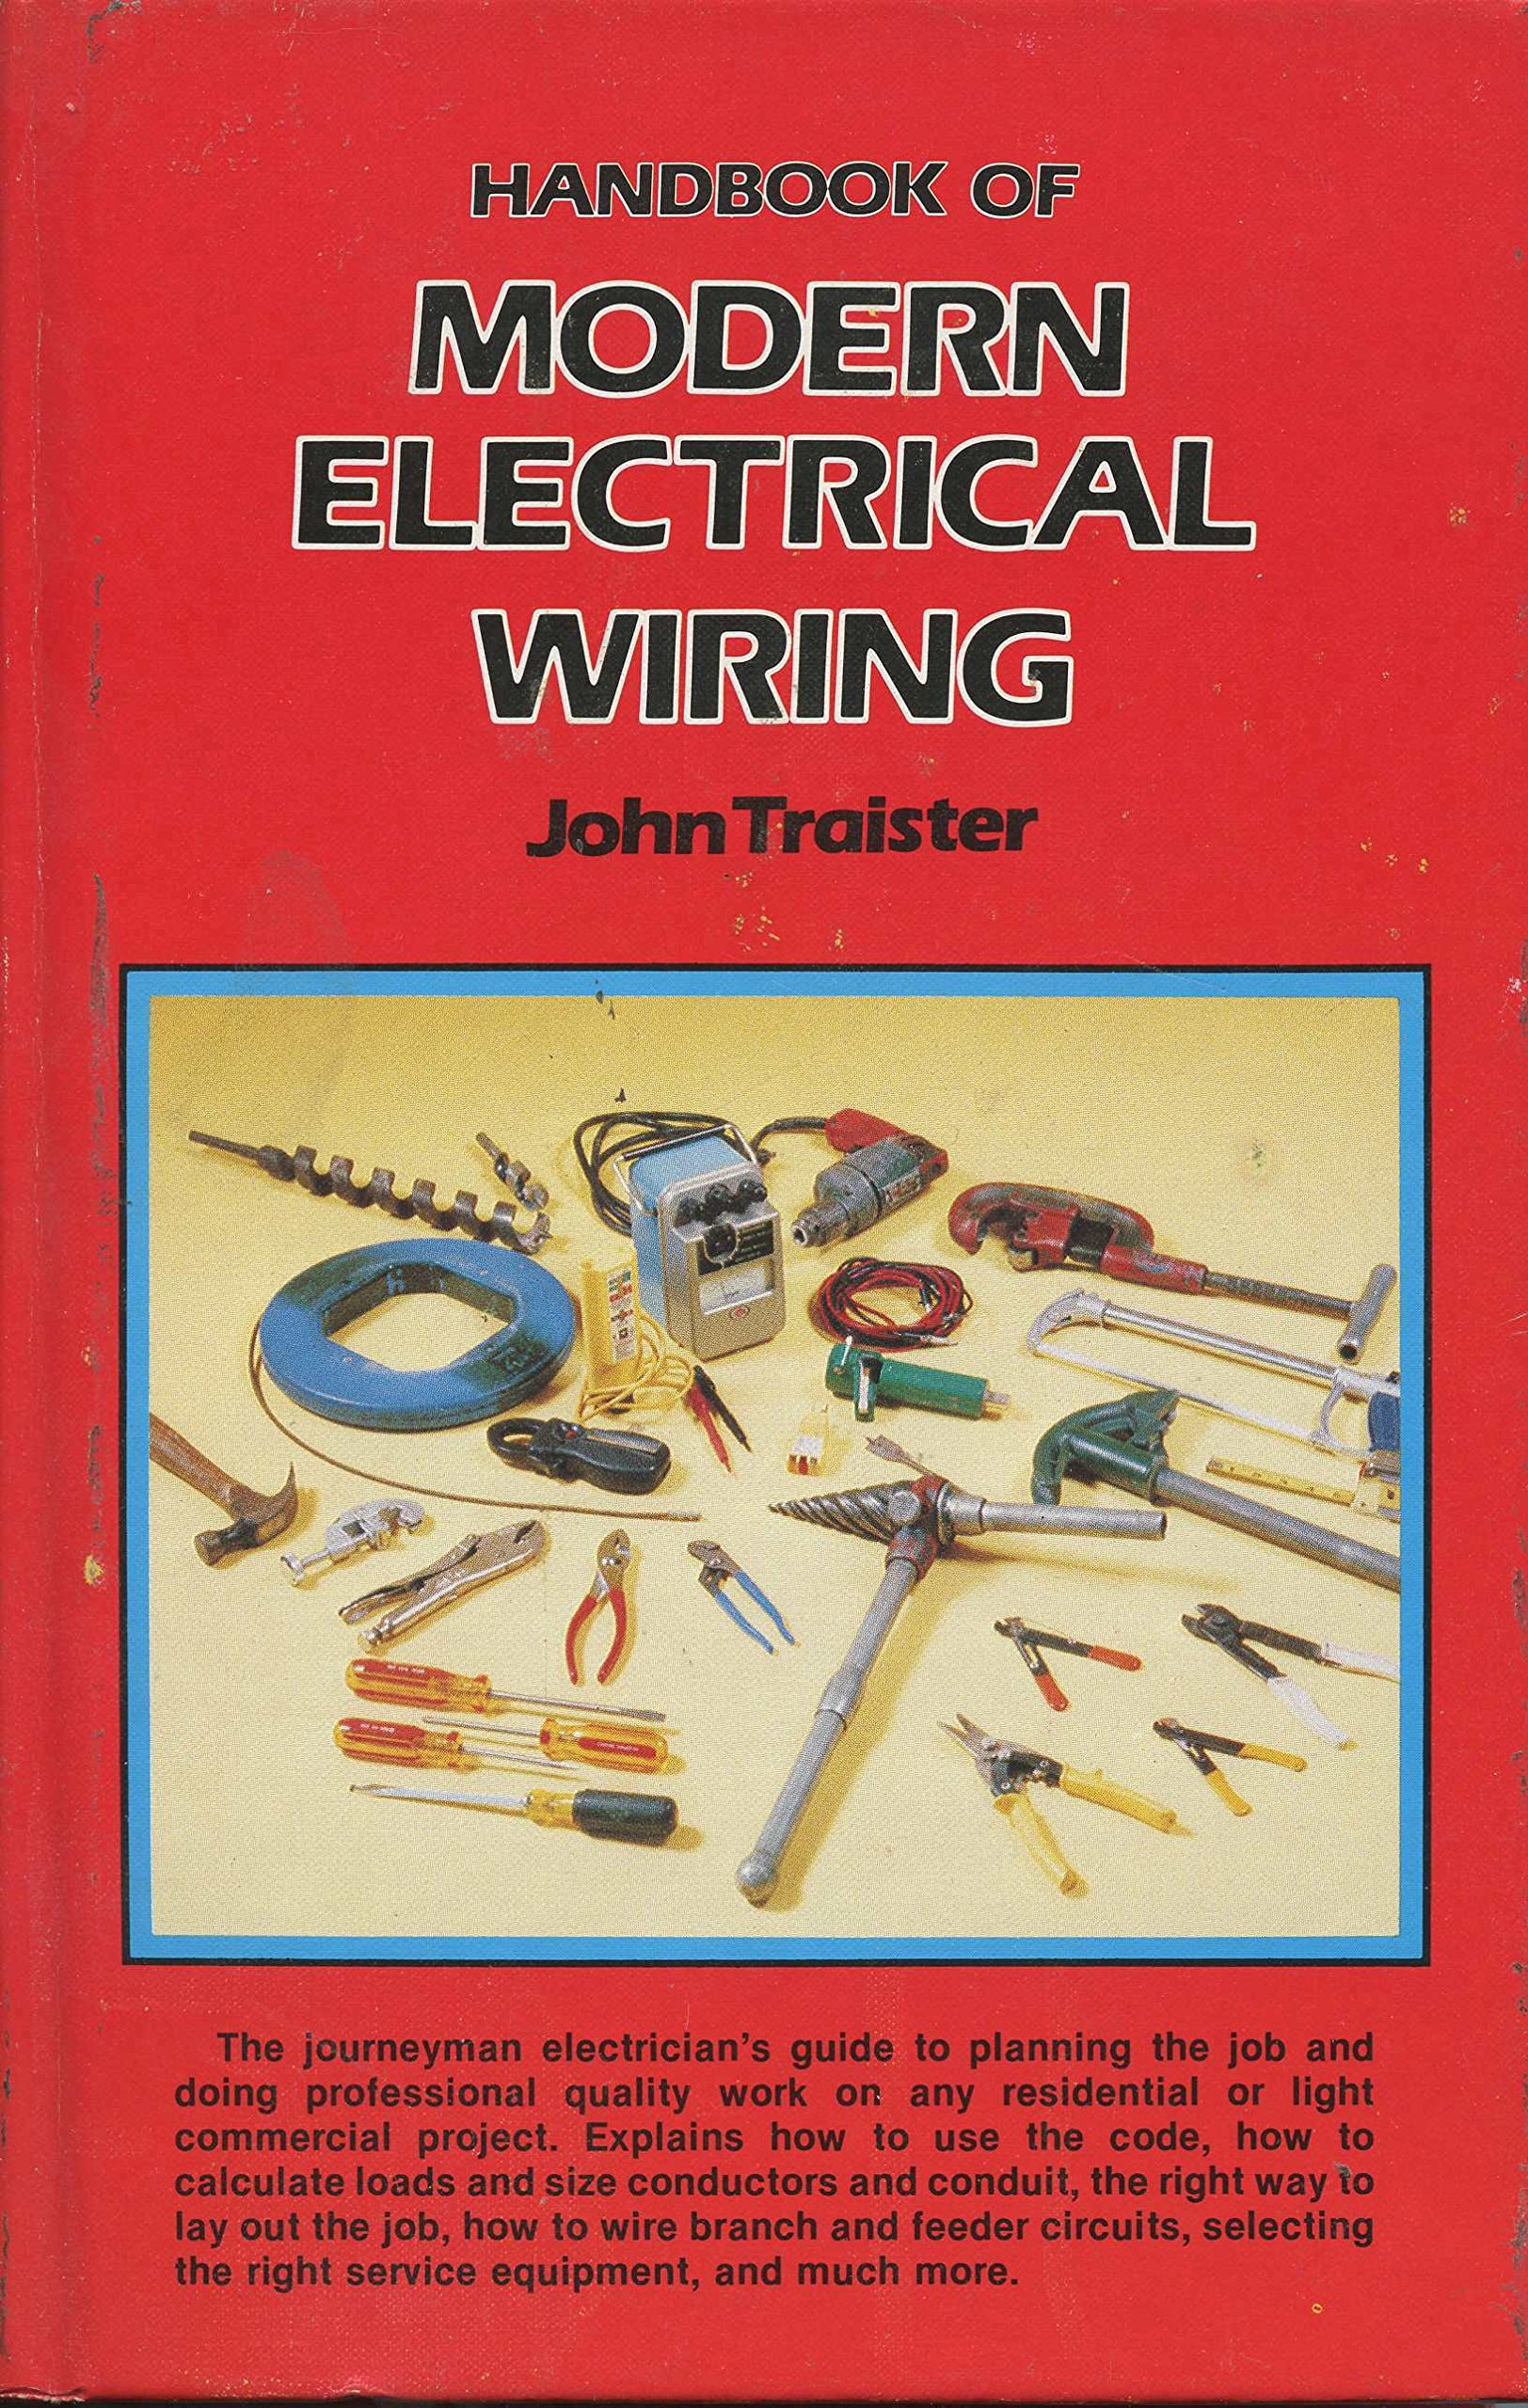 Tremendous Electrical Wiring Handbook Basic Electronics Wiring Diagram Wiring Digital Resources Counpmognl